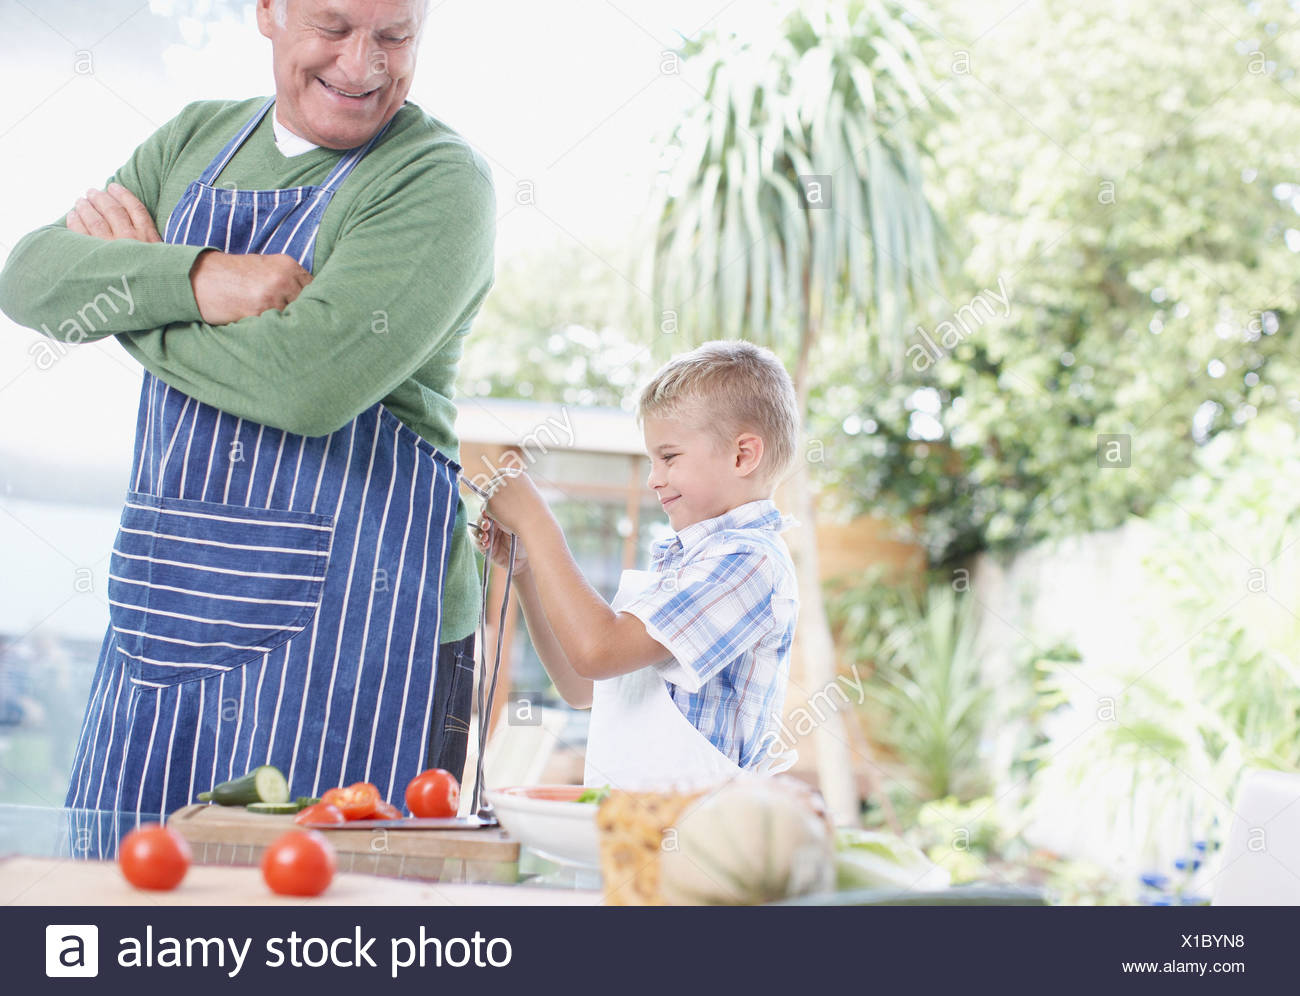 Grandson tying apron for grandfather - Stock Image